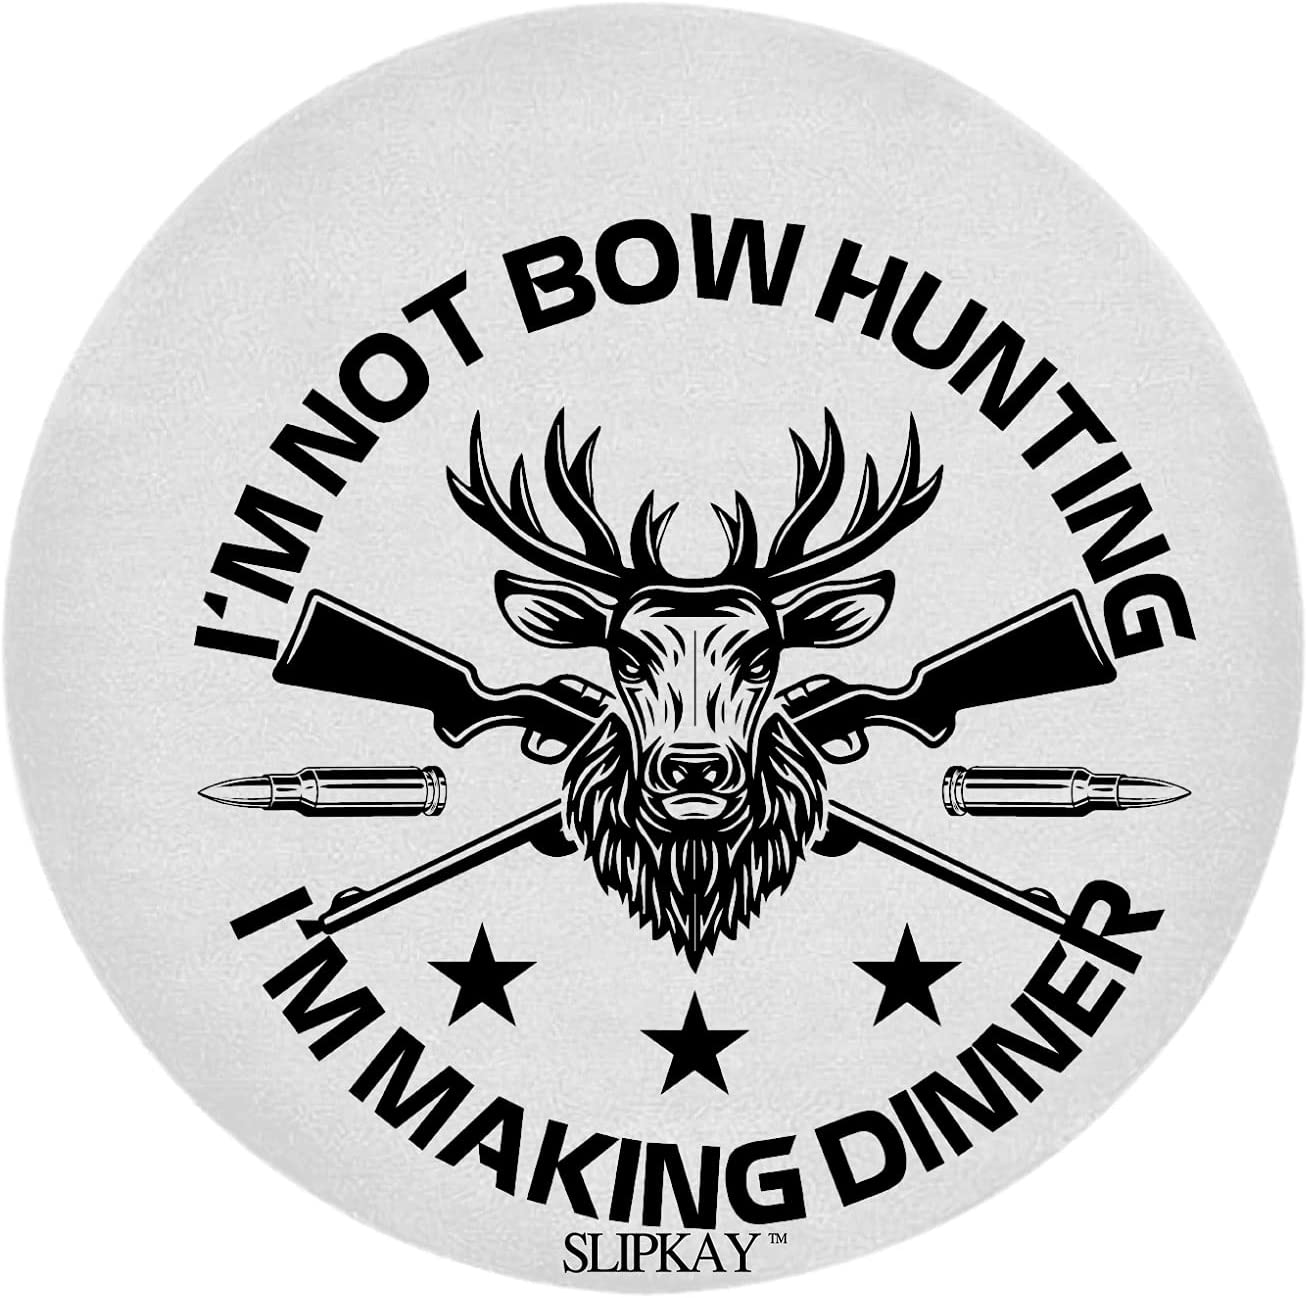 Im Not Bow Hunting Large special price Round Dinner Max 48% OFF Rug Making